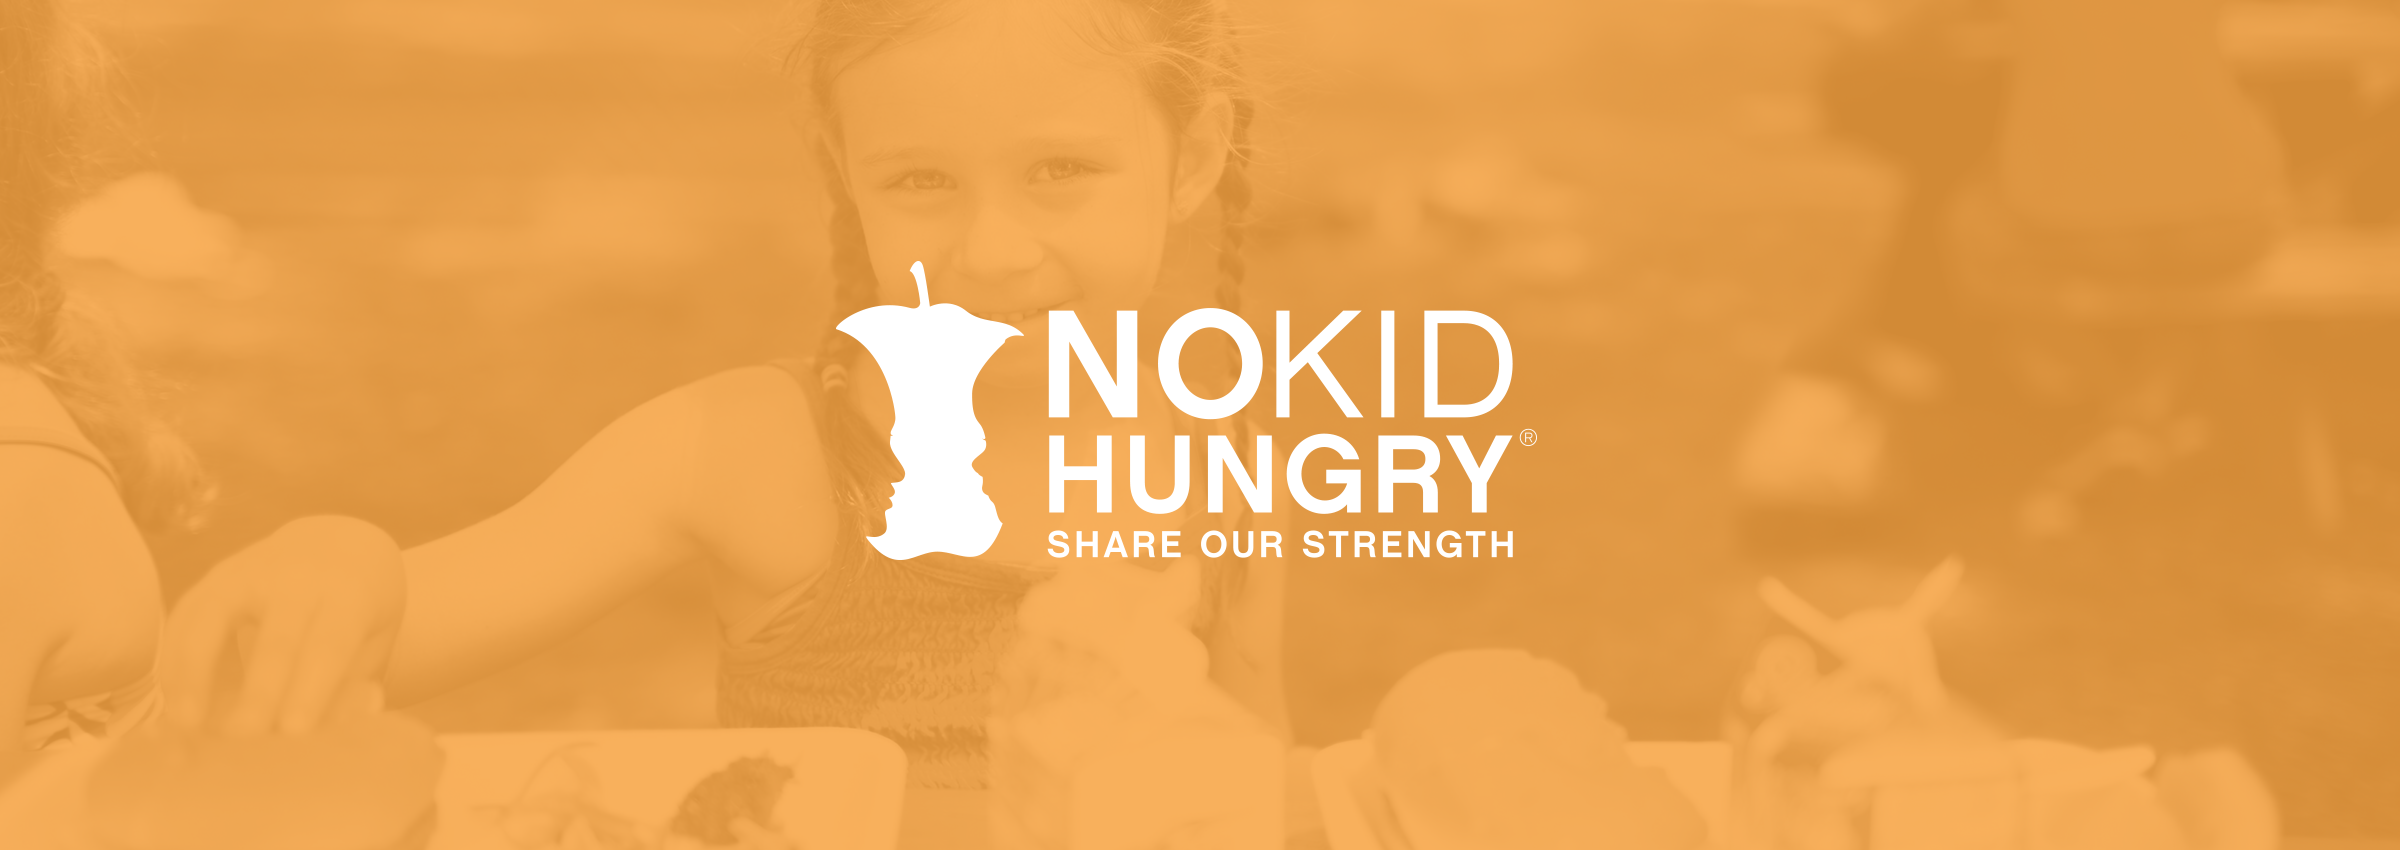 No Kid Hungry - Homepage Graphic